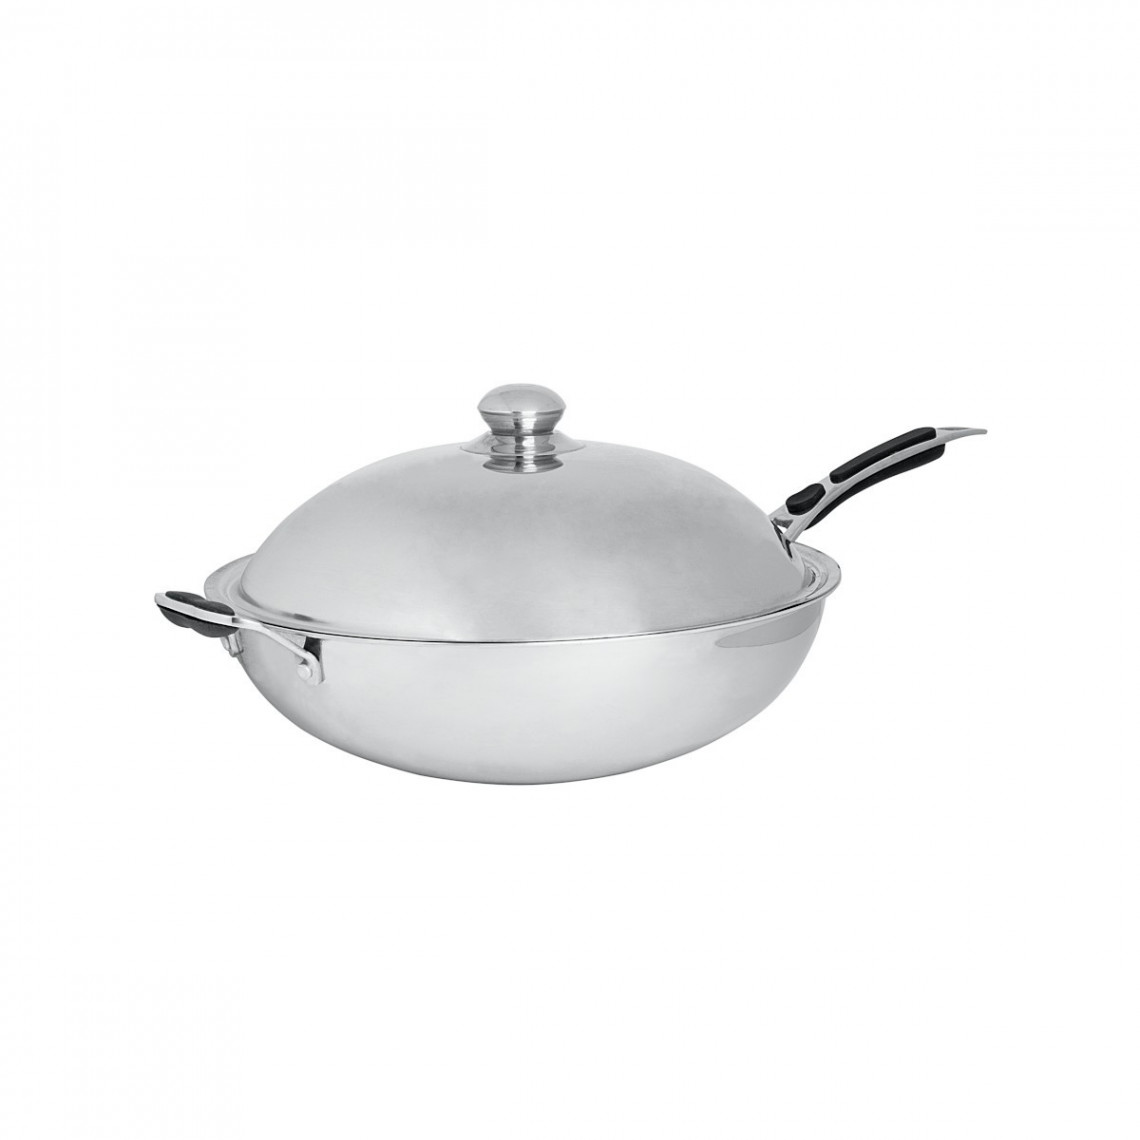 Couvercle sauteuse wok inox Cooking